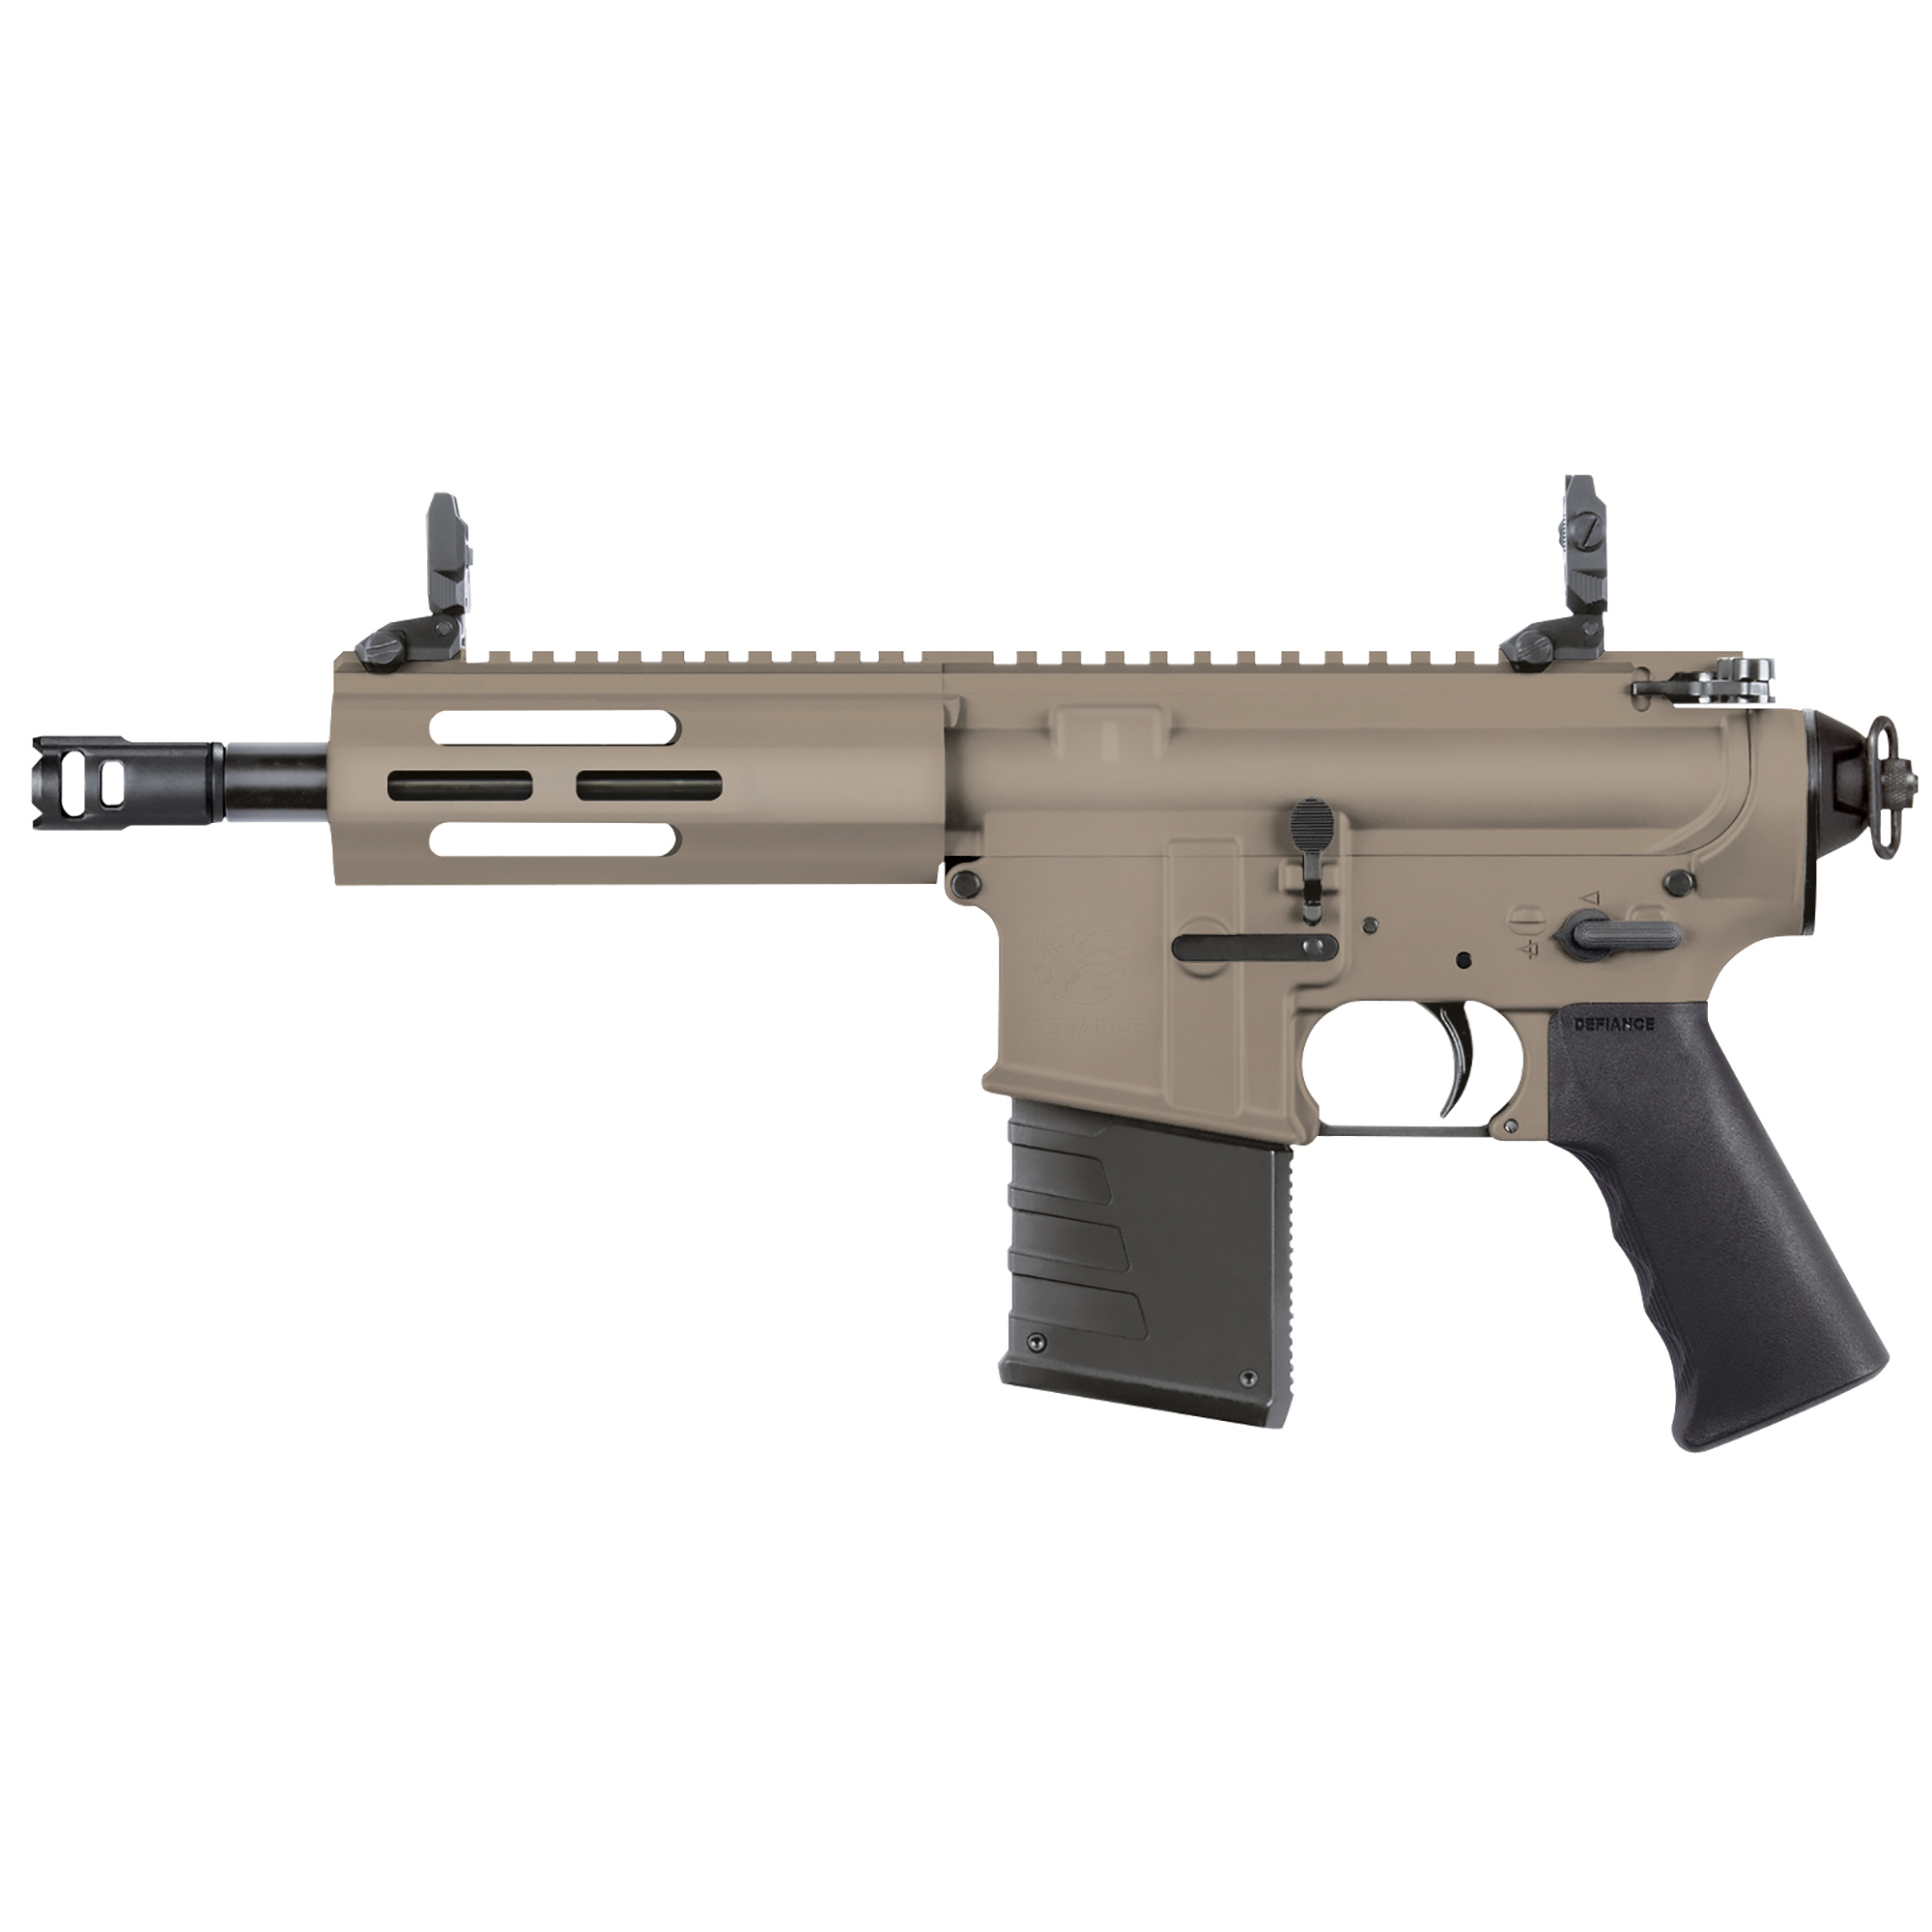 """The Kriss DMK22 Pistol features forged 7075-T6 aluminum receivers"""" a pistol Grip"""" QD rear sling swivel"""" low profile flip up sights"""" bolt lock"""" forward assist"""" and full size dust cover. It is compatible with most MIL-SPEC AR-15 trigger kits and charging handles."""